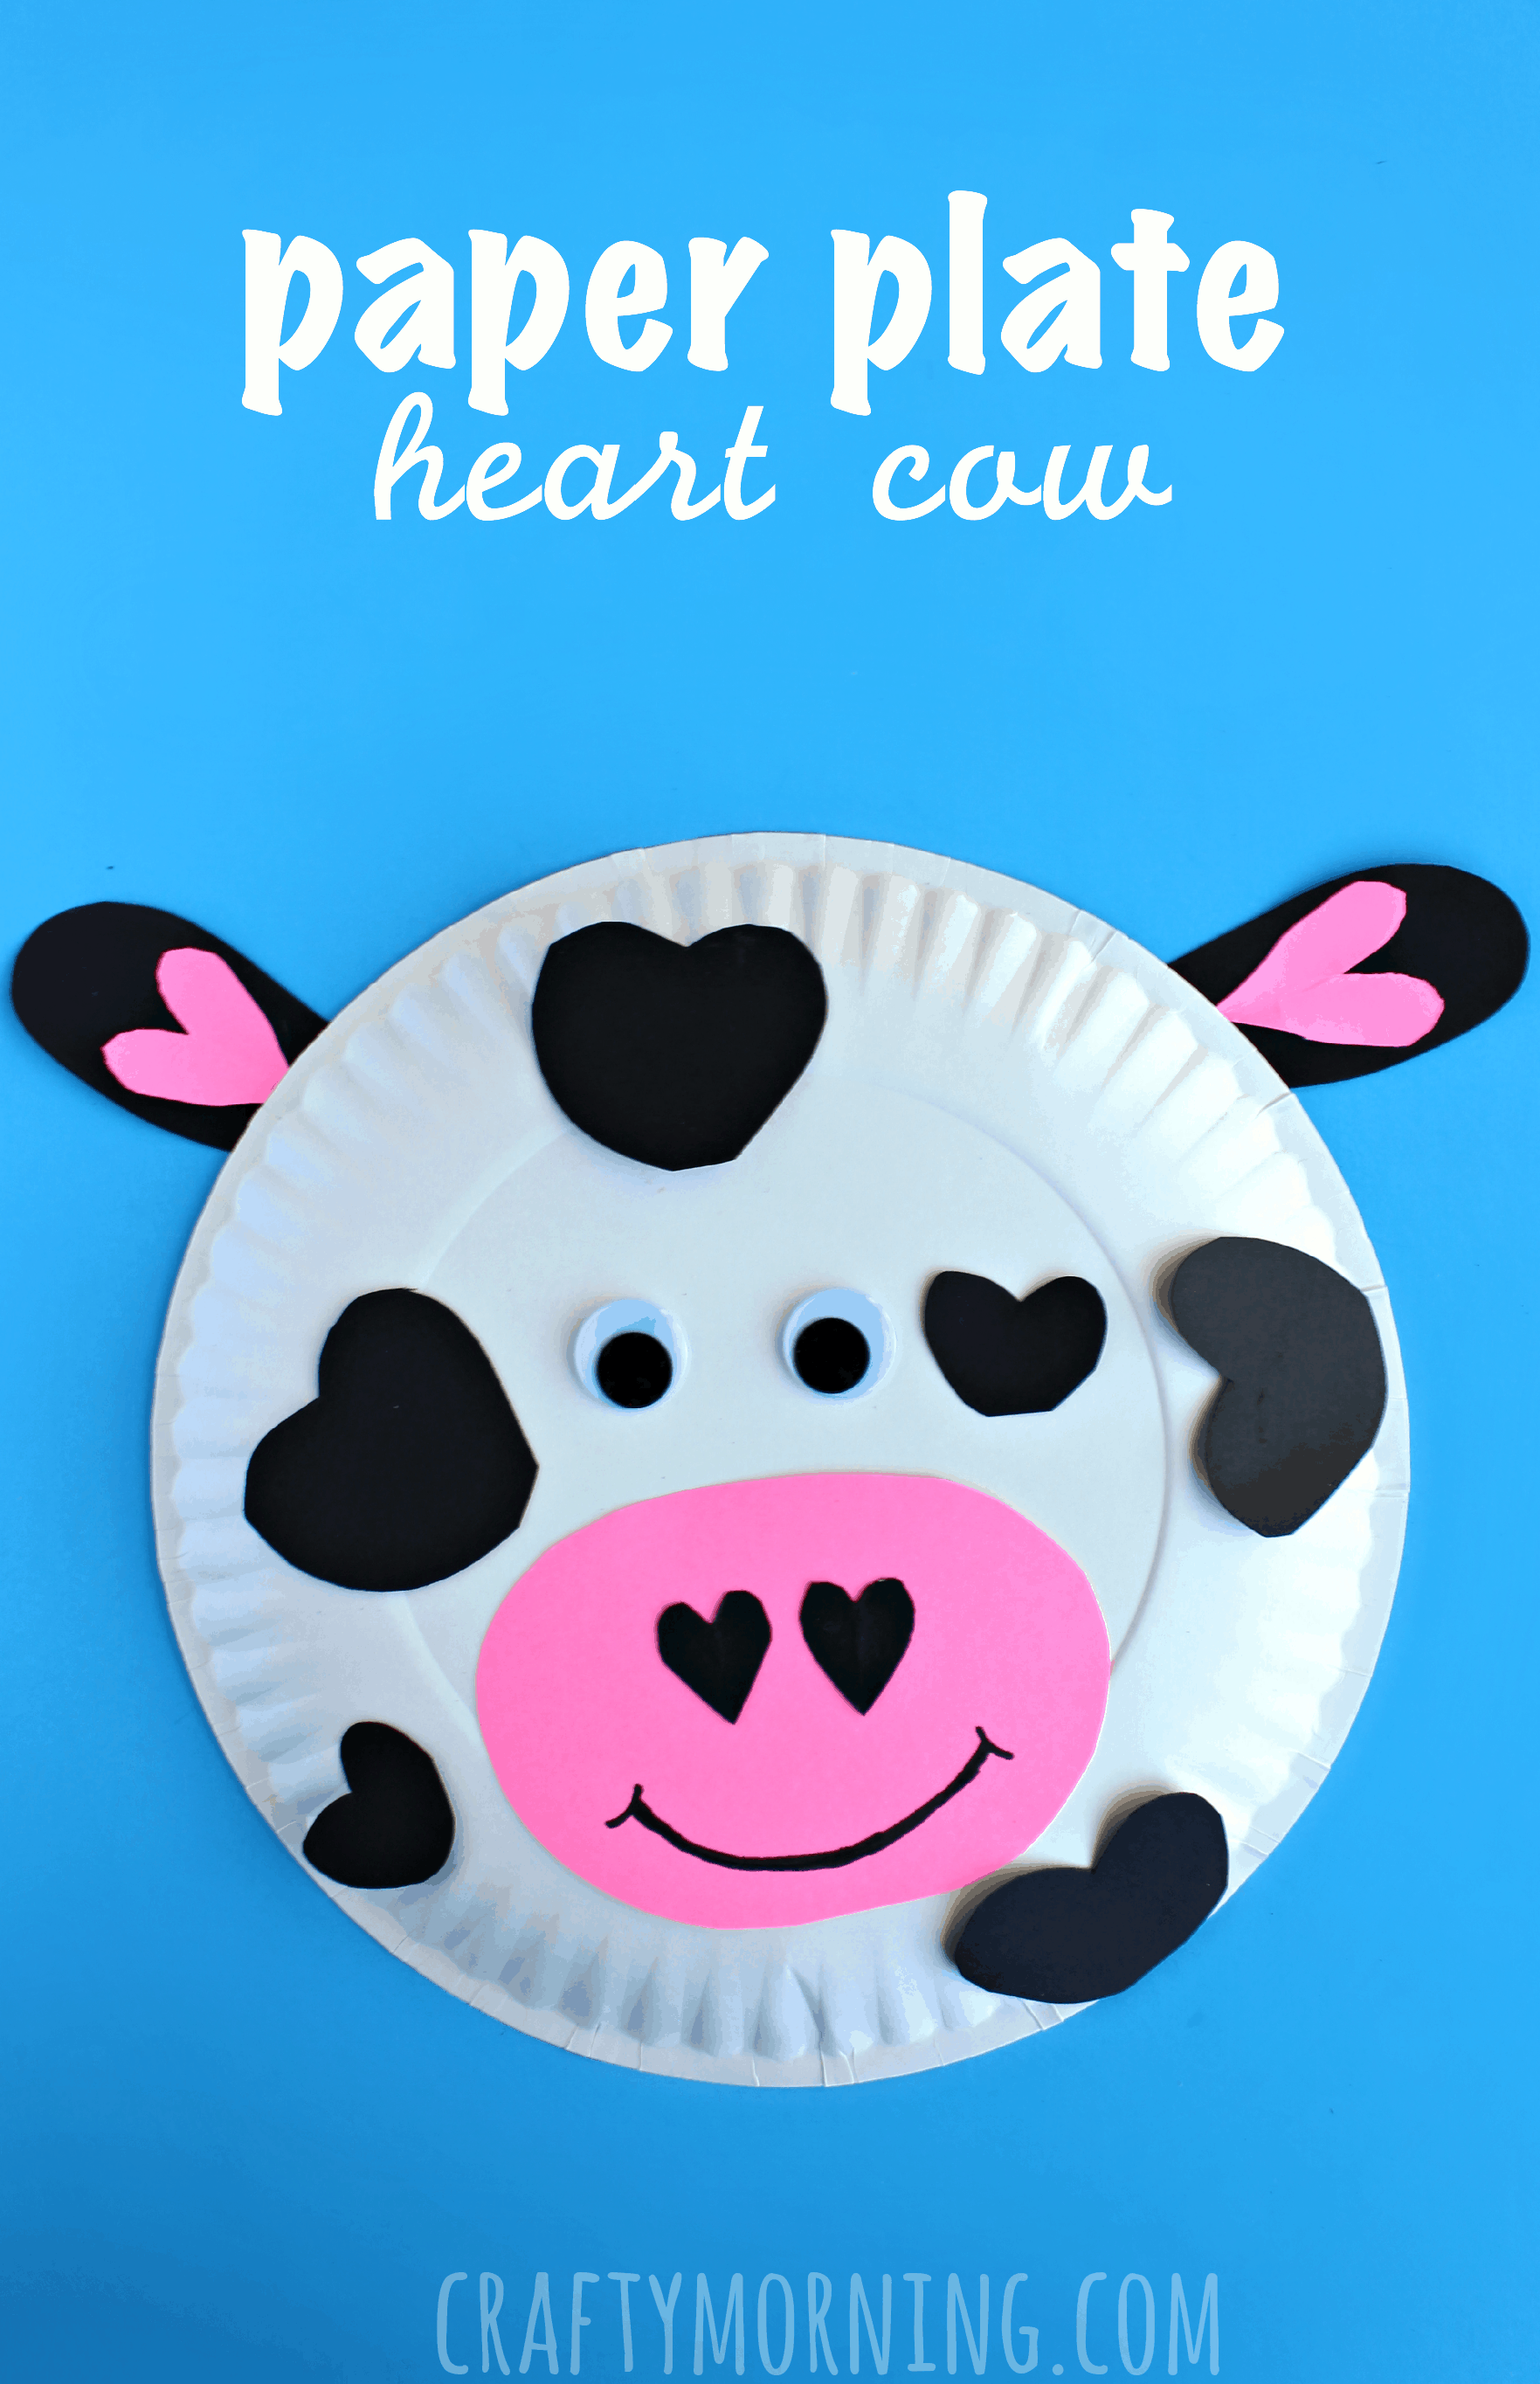 15 fantastic cow themed diy projects 1 paper plate heart cow solutioingenieria